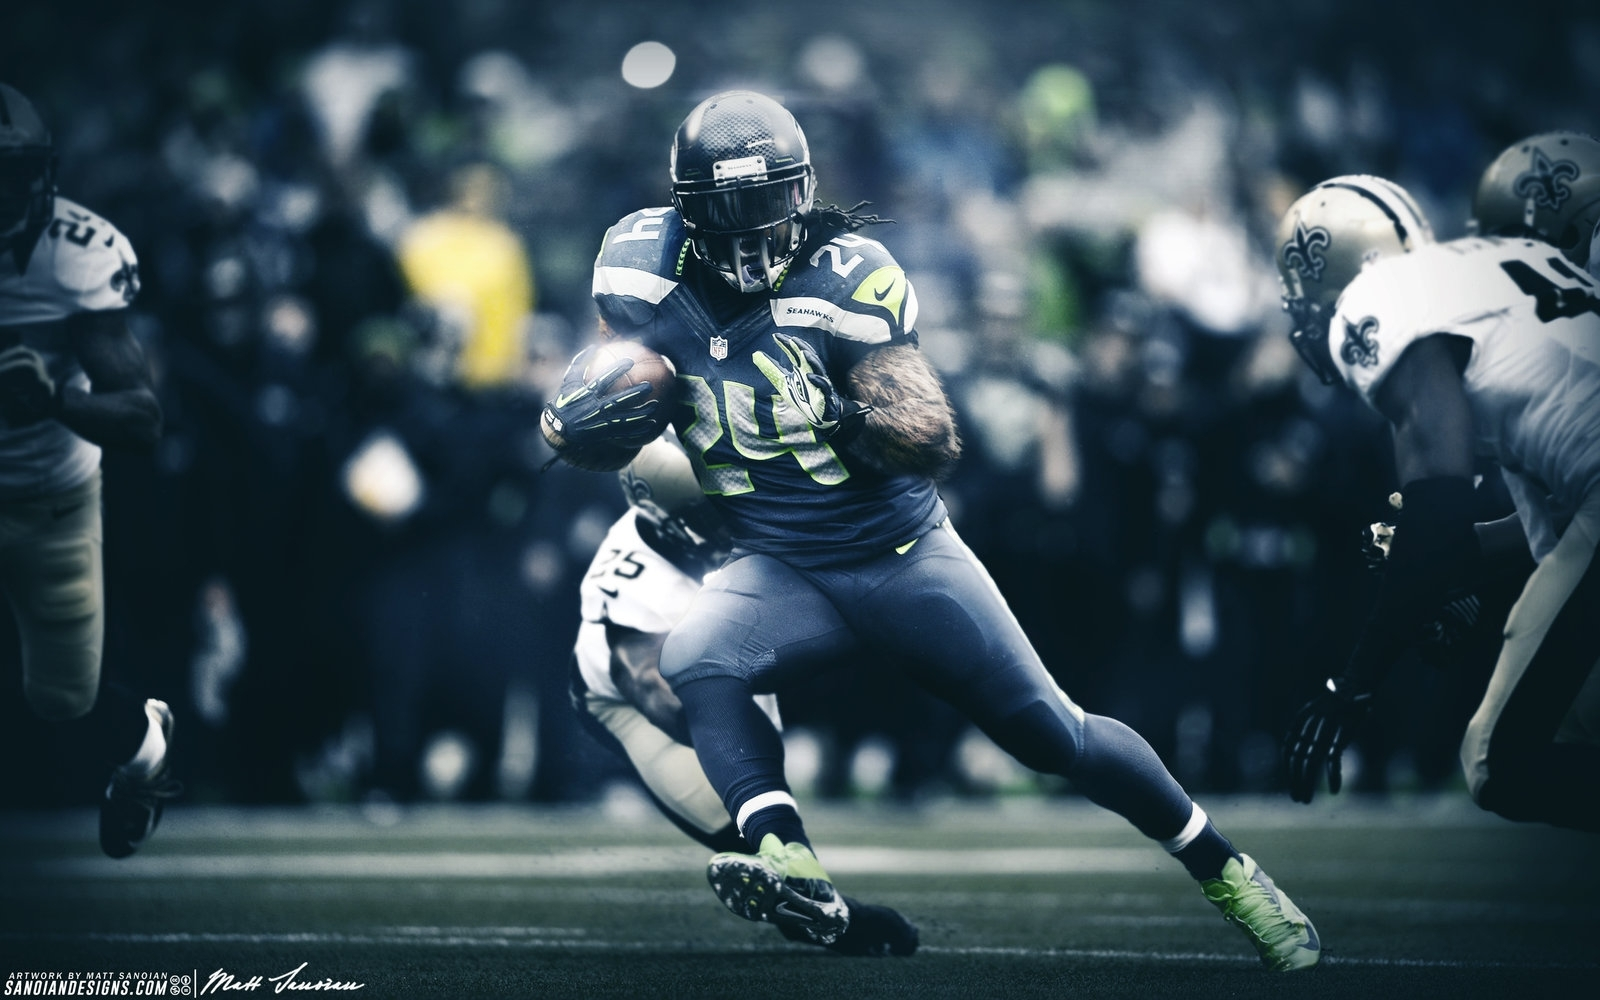 marshawn lynch beast modesanoinoi on deviantart